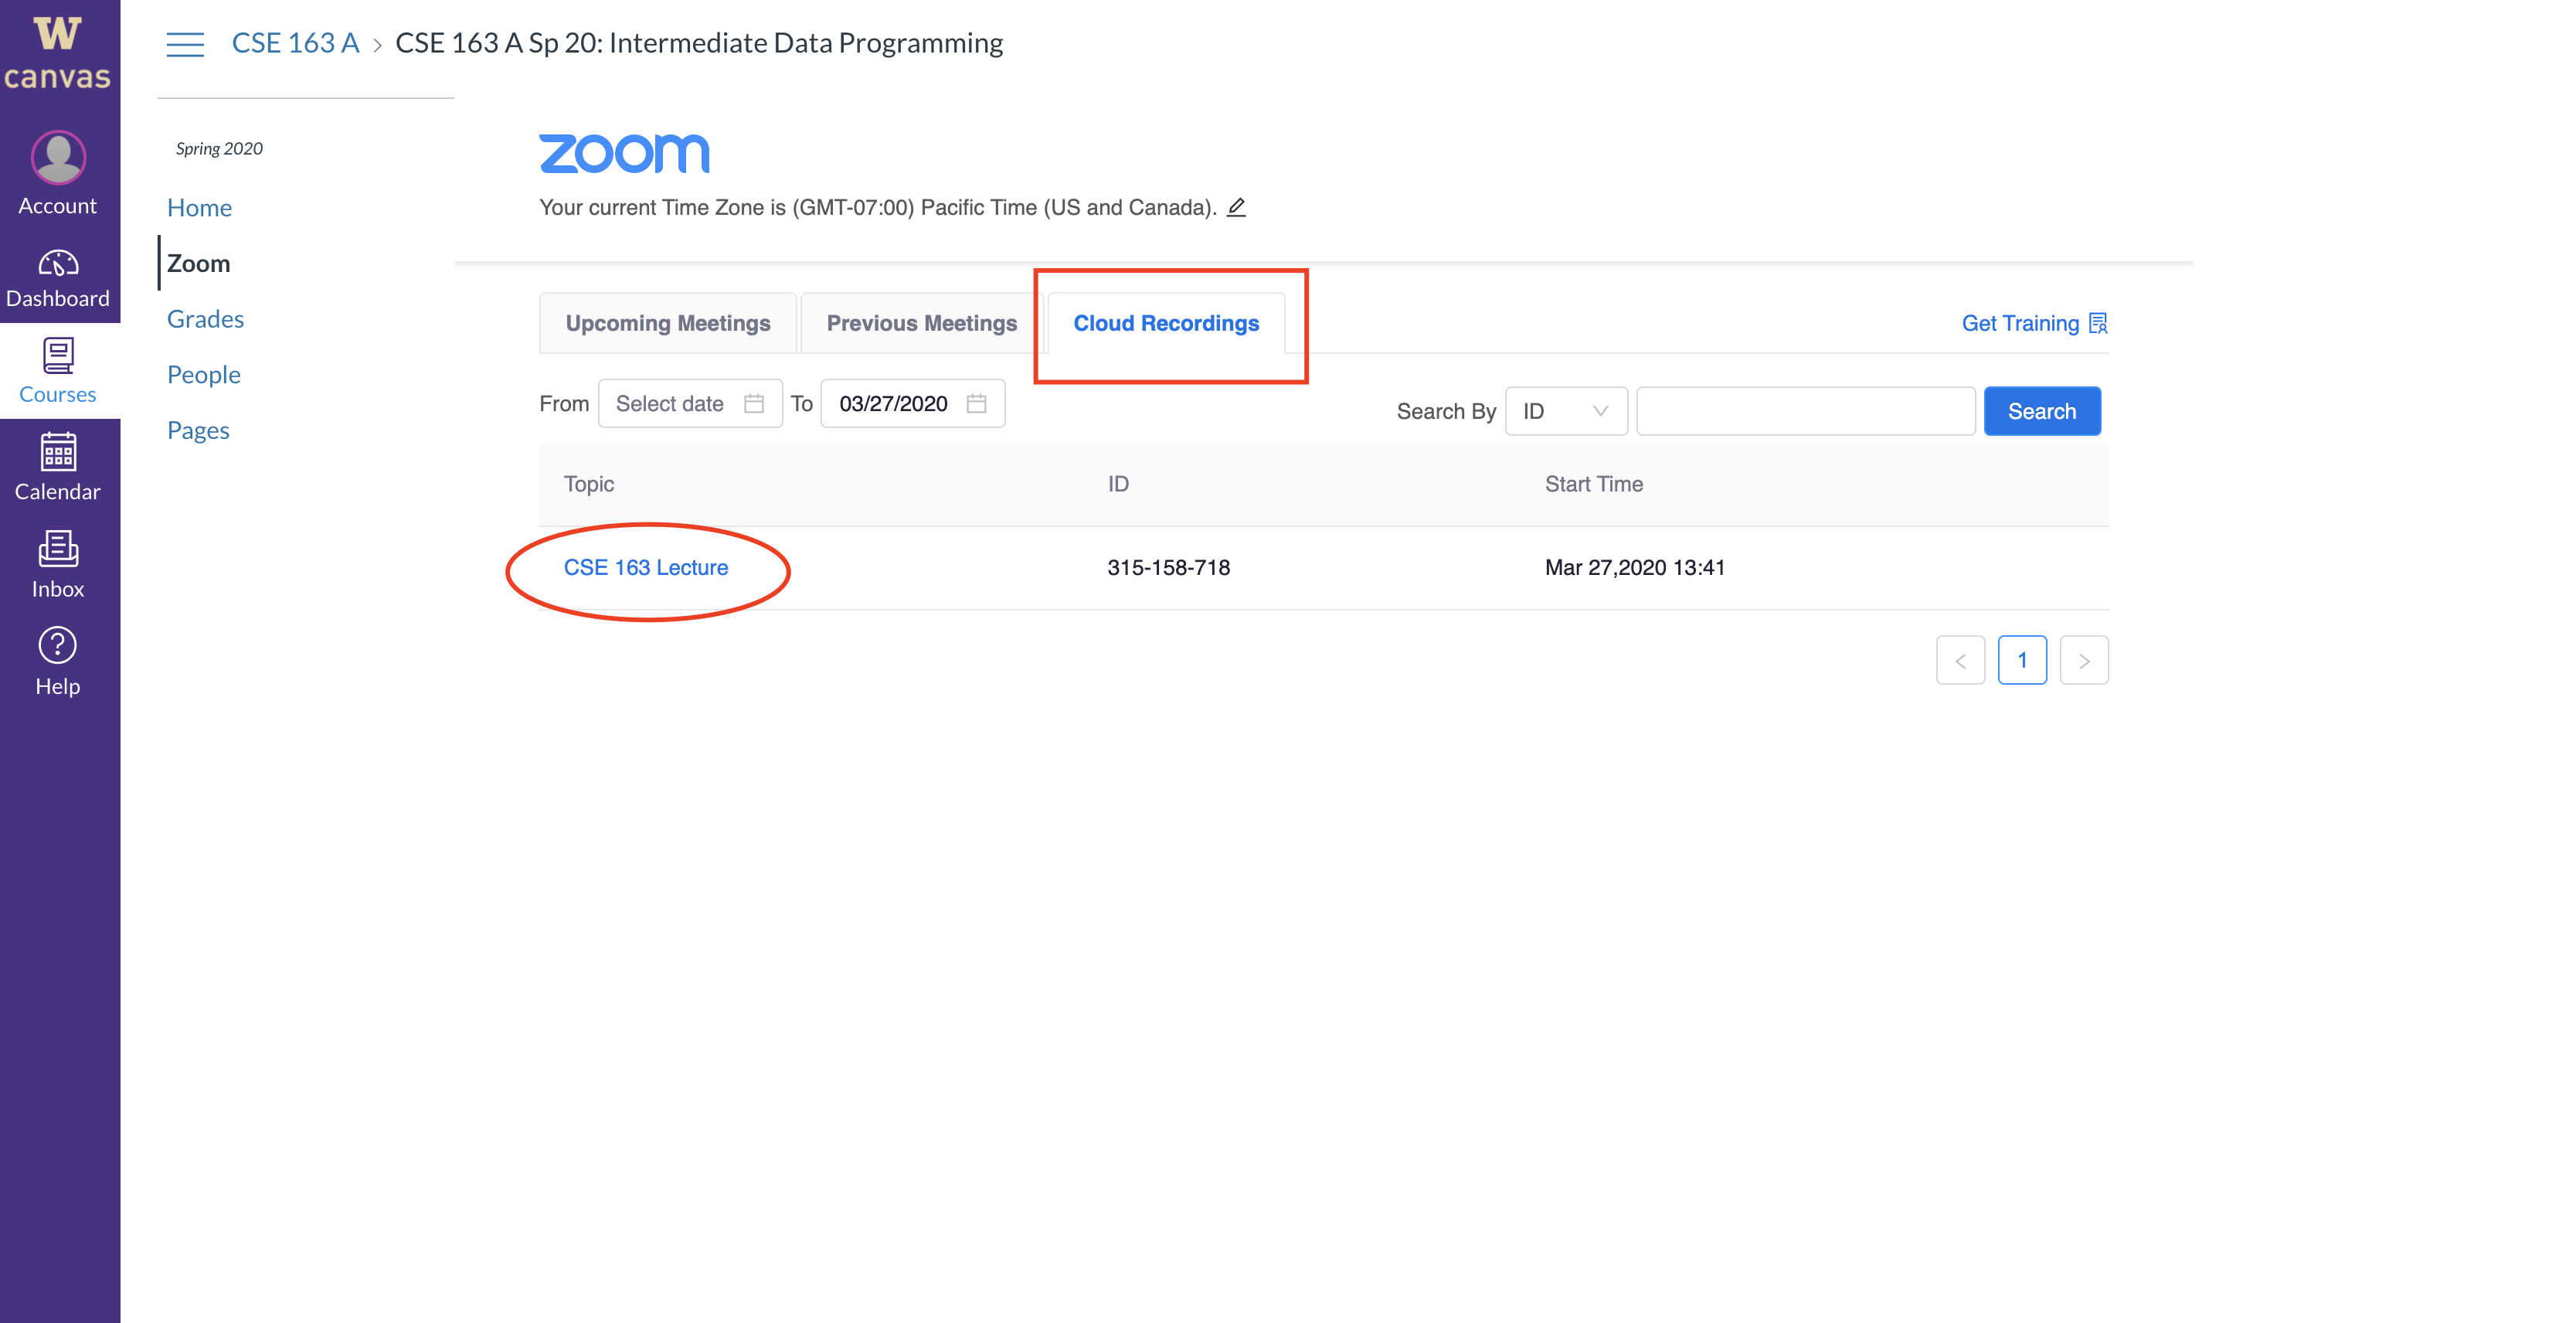 Showing the Cloud Recordings tab of Zoom in Canvas